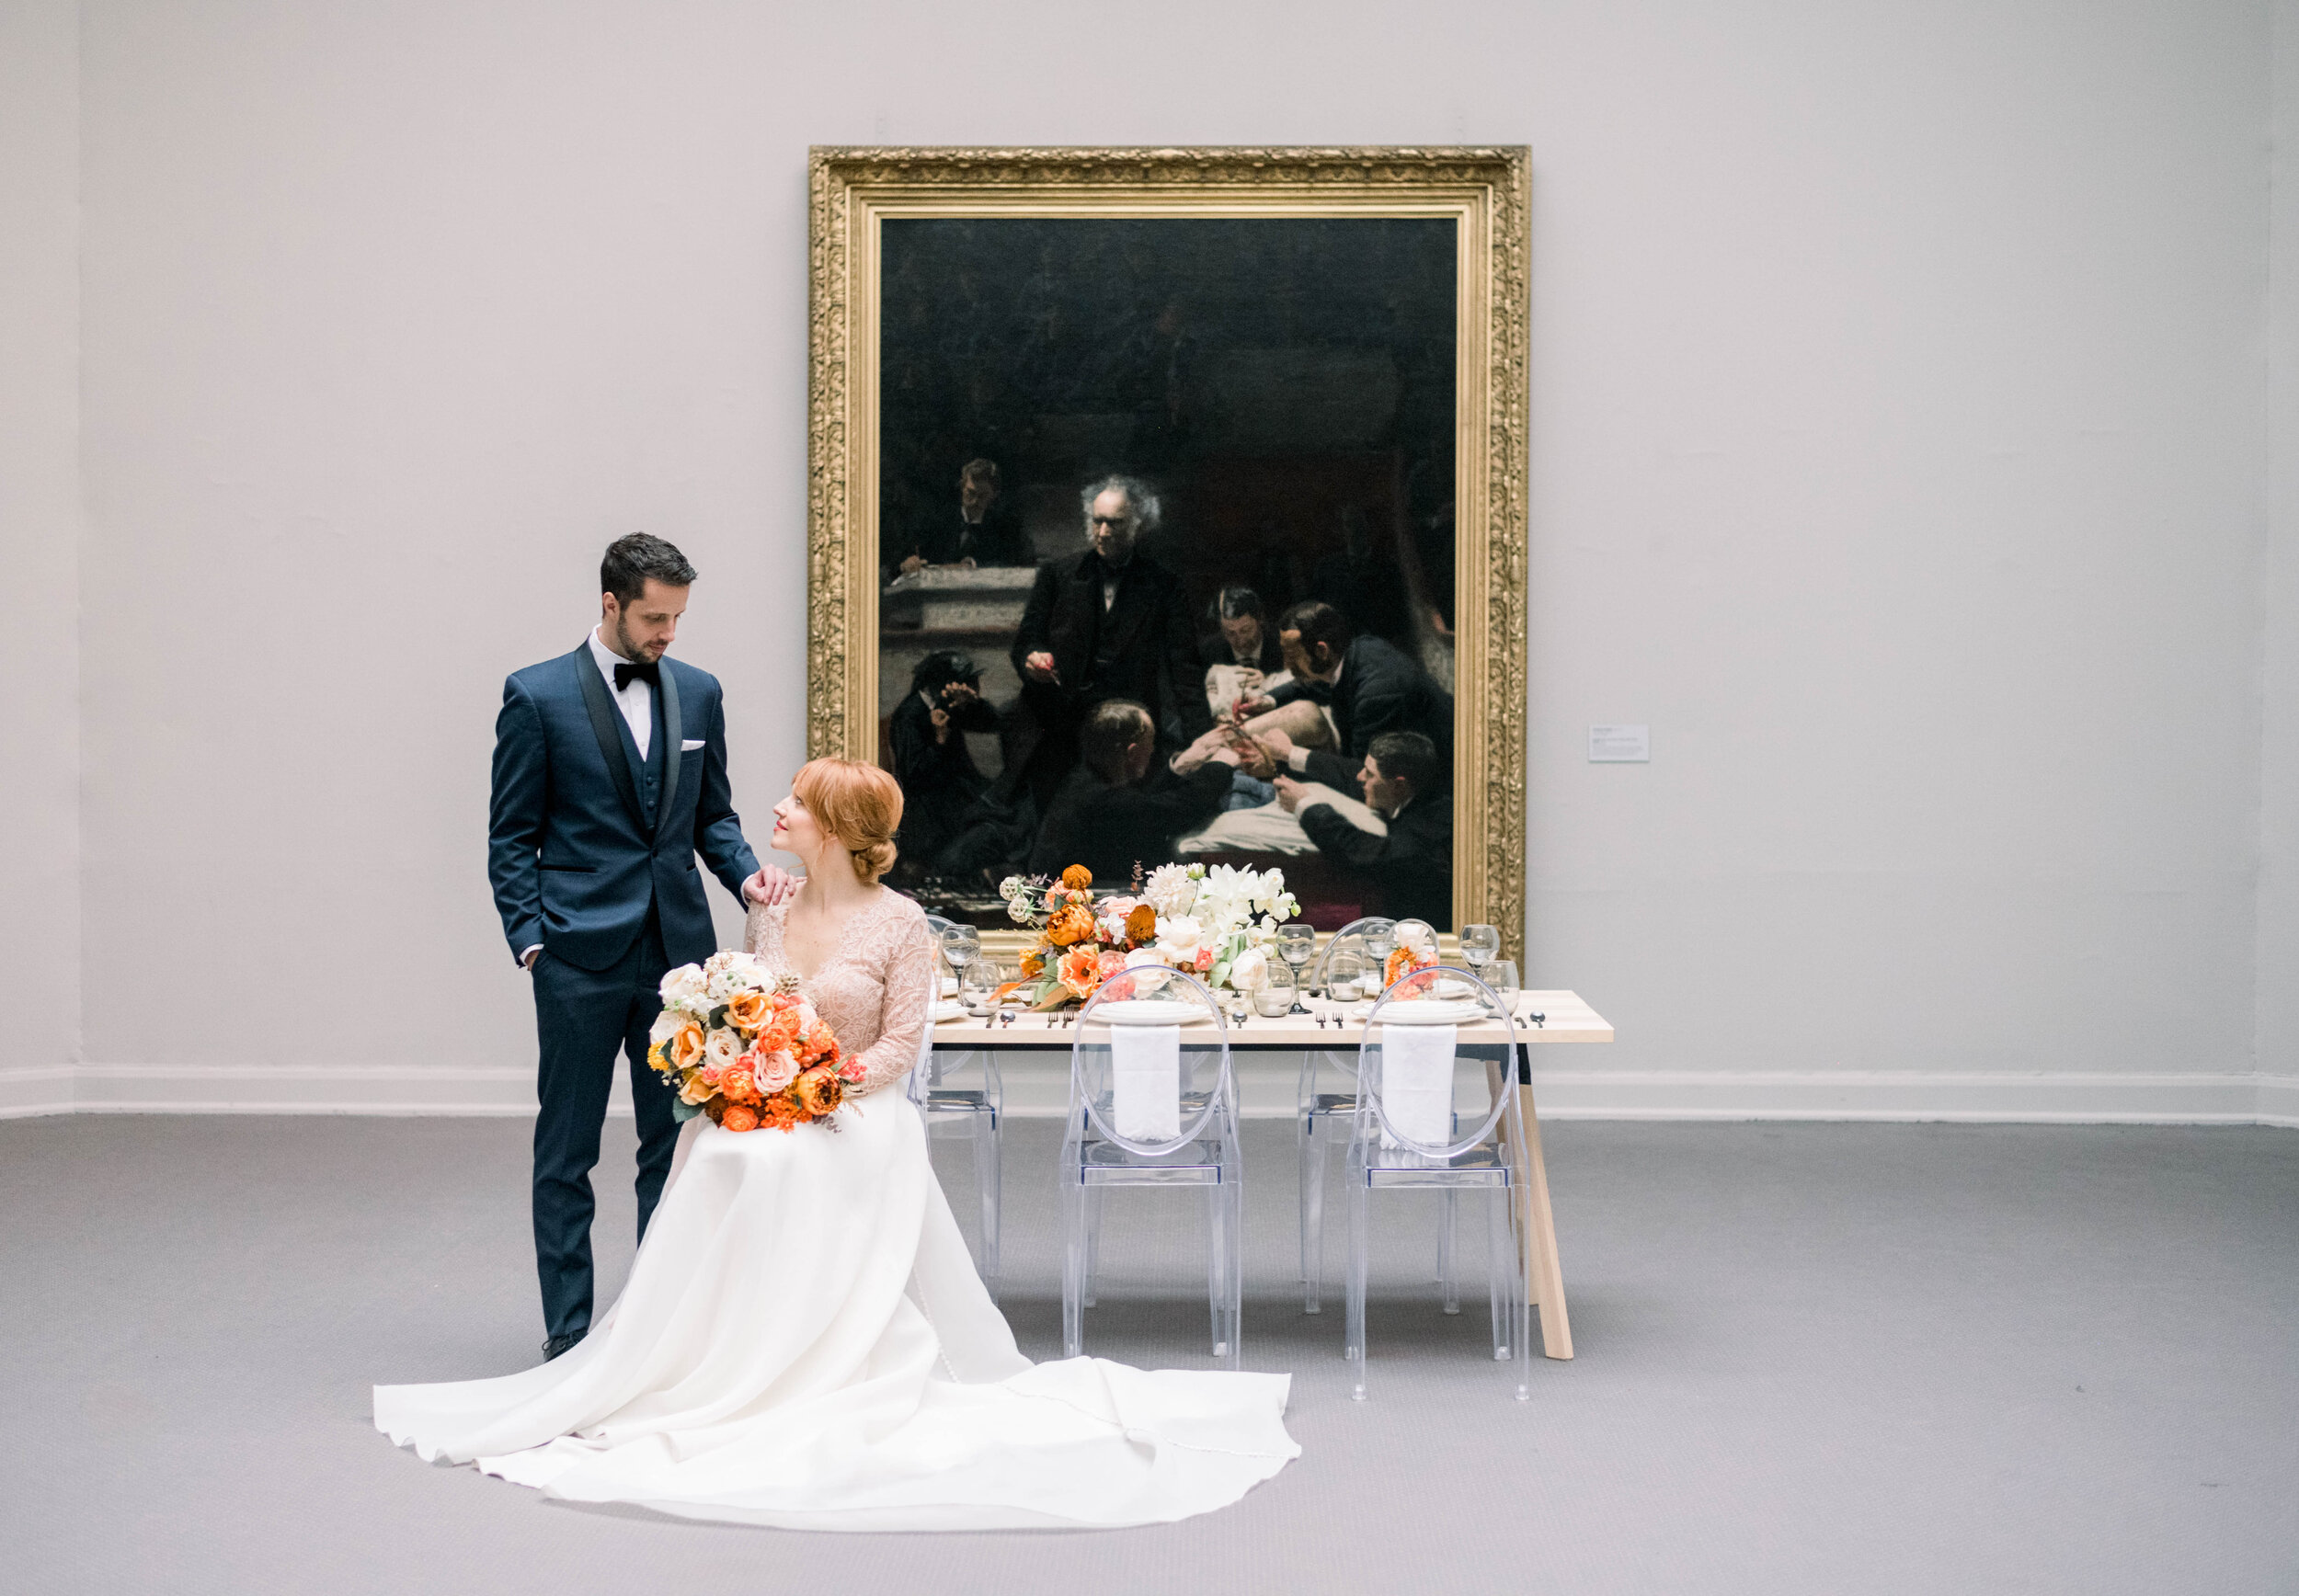 Fine art wedding inspiration with Kelly Faetanini dress and fall florals at PAFA museum in Philadelphia by Liz Andolina Photography